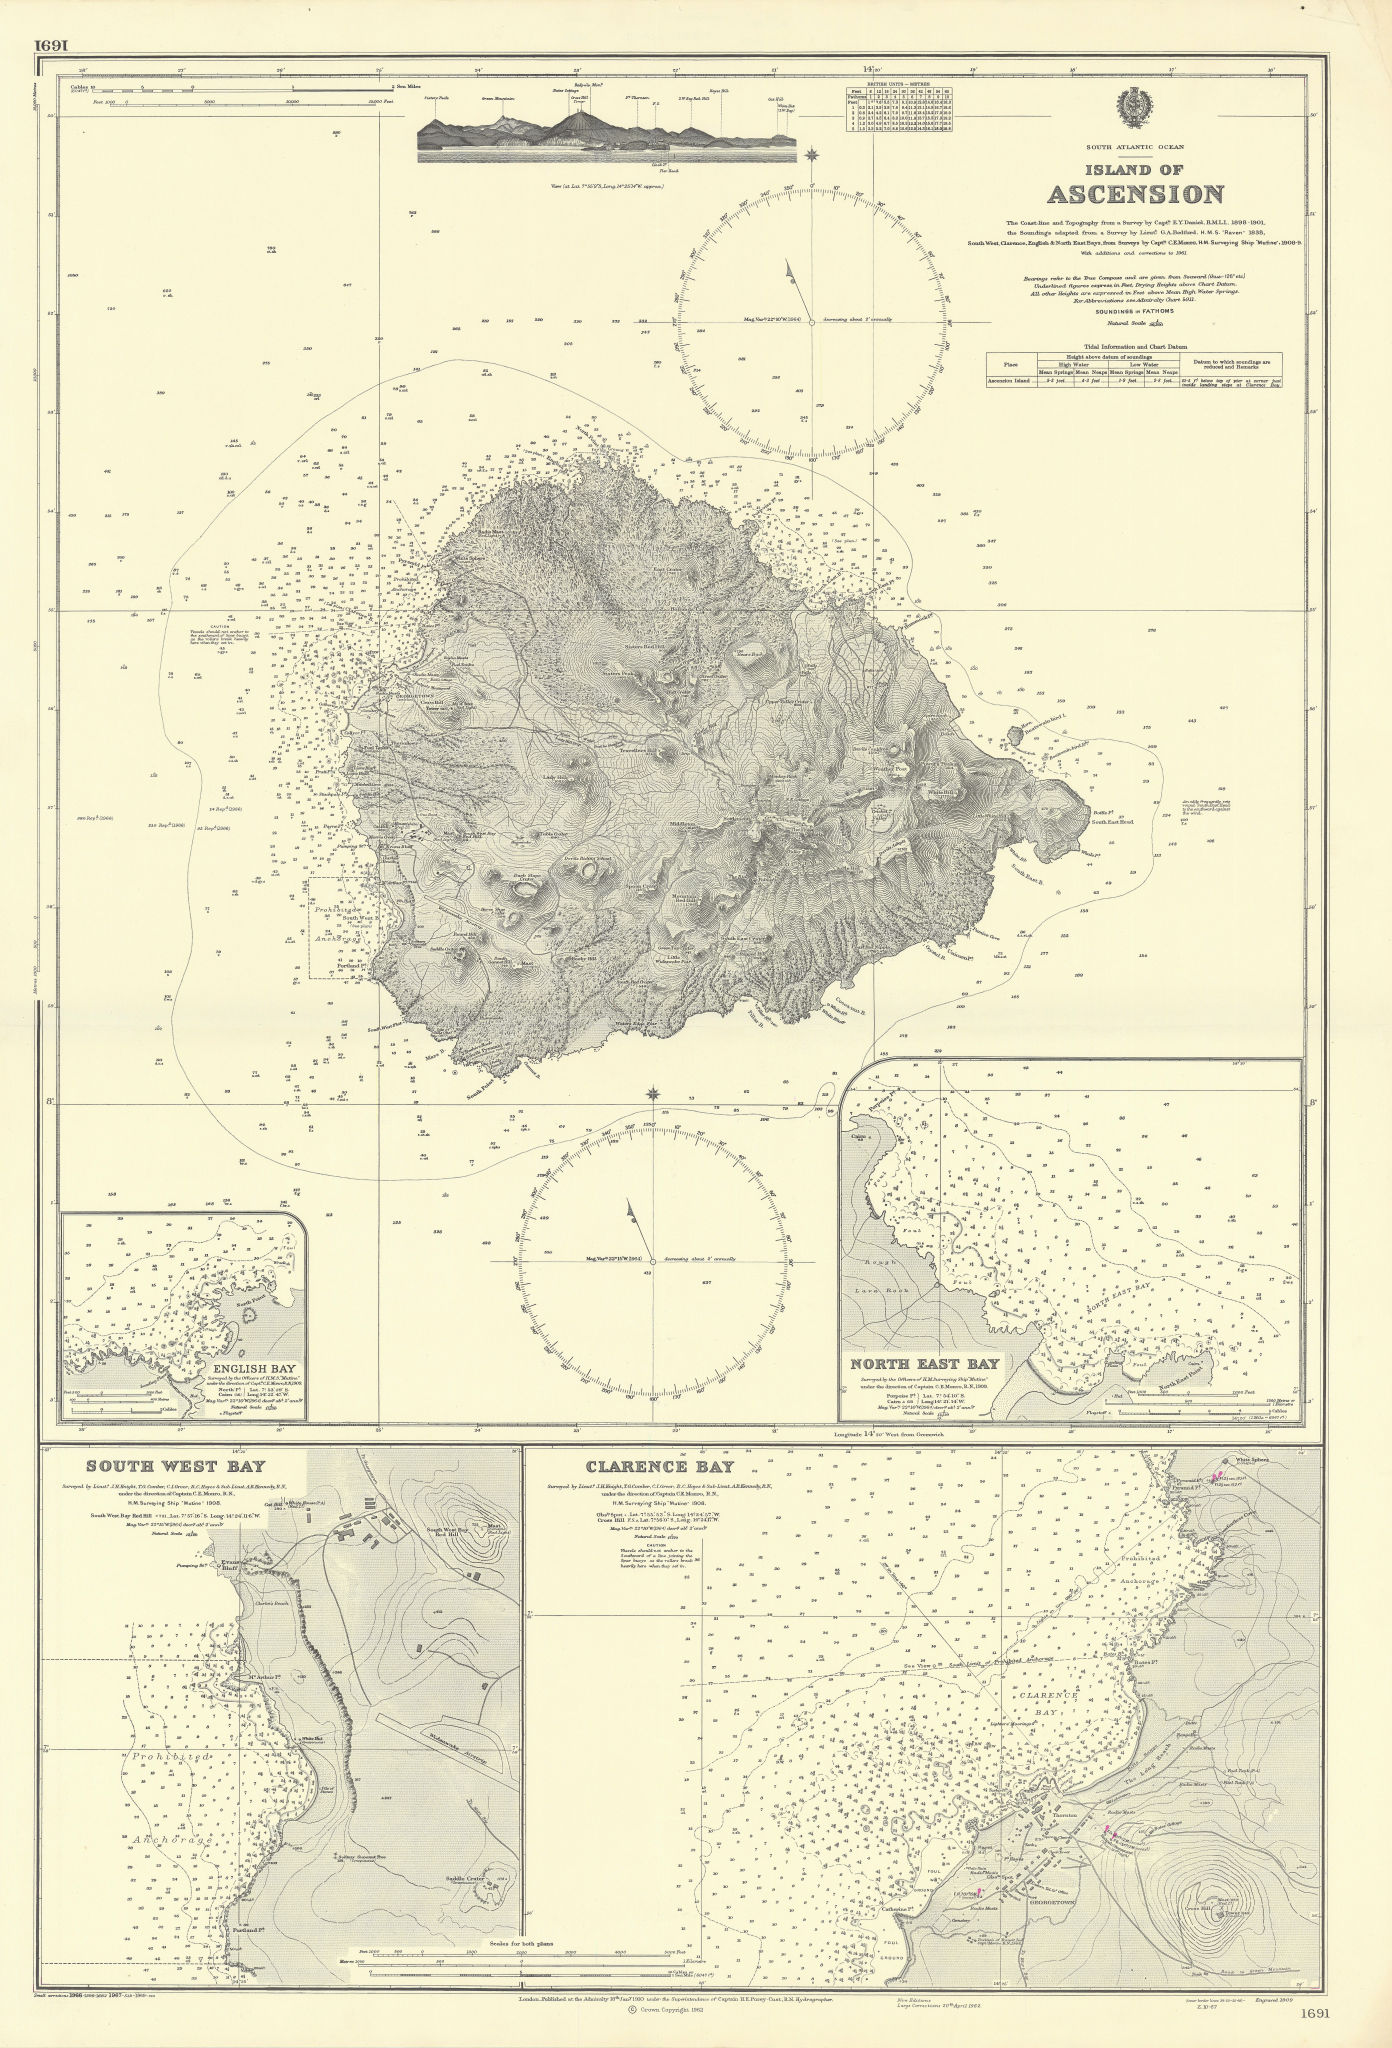 Ascension Island South Atlantic Clarence Bays ADMIRALTY chart 1910 (1967) map